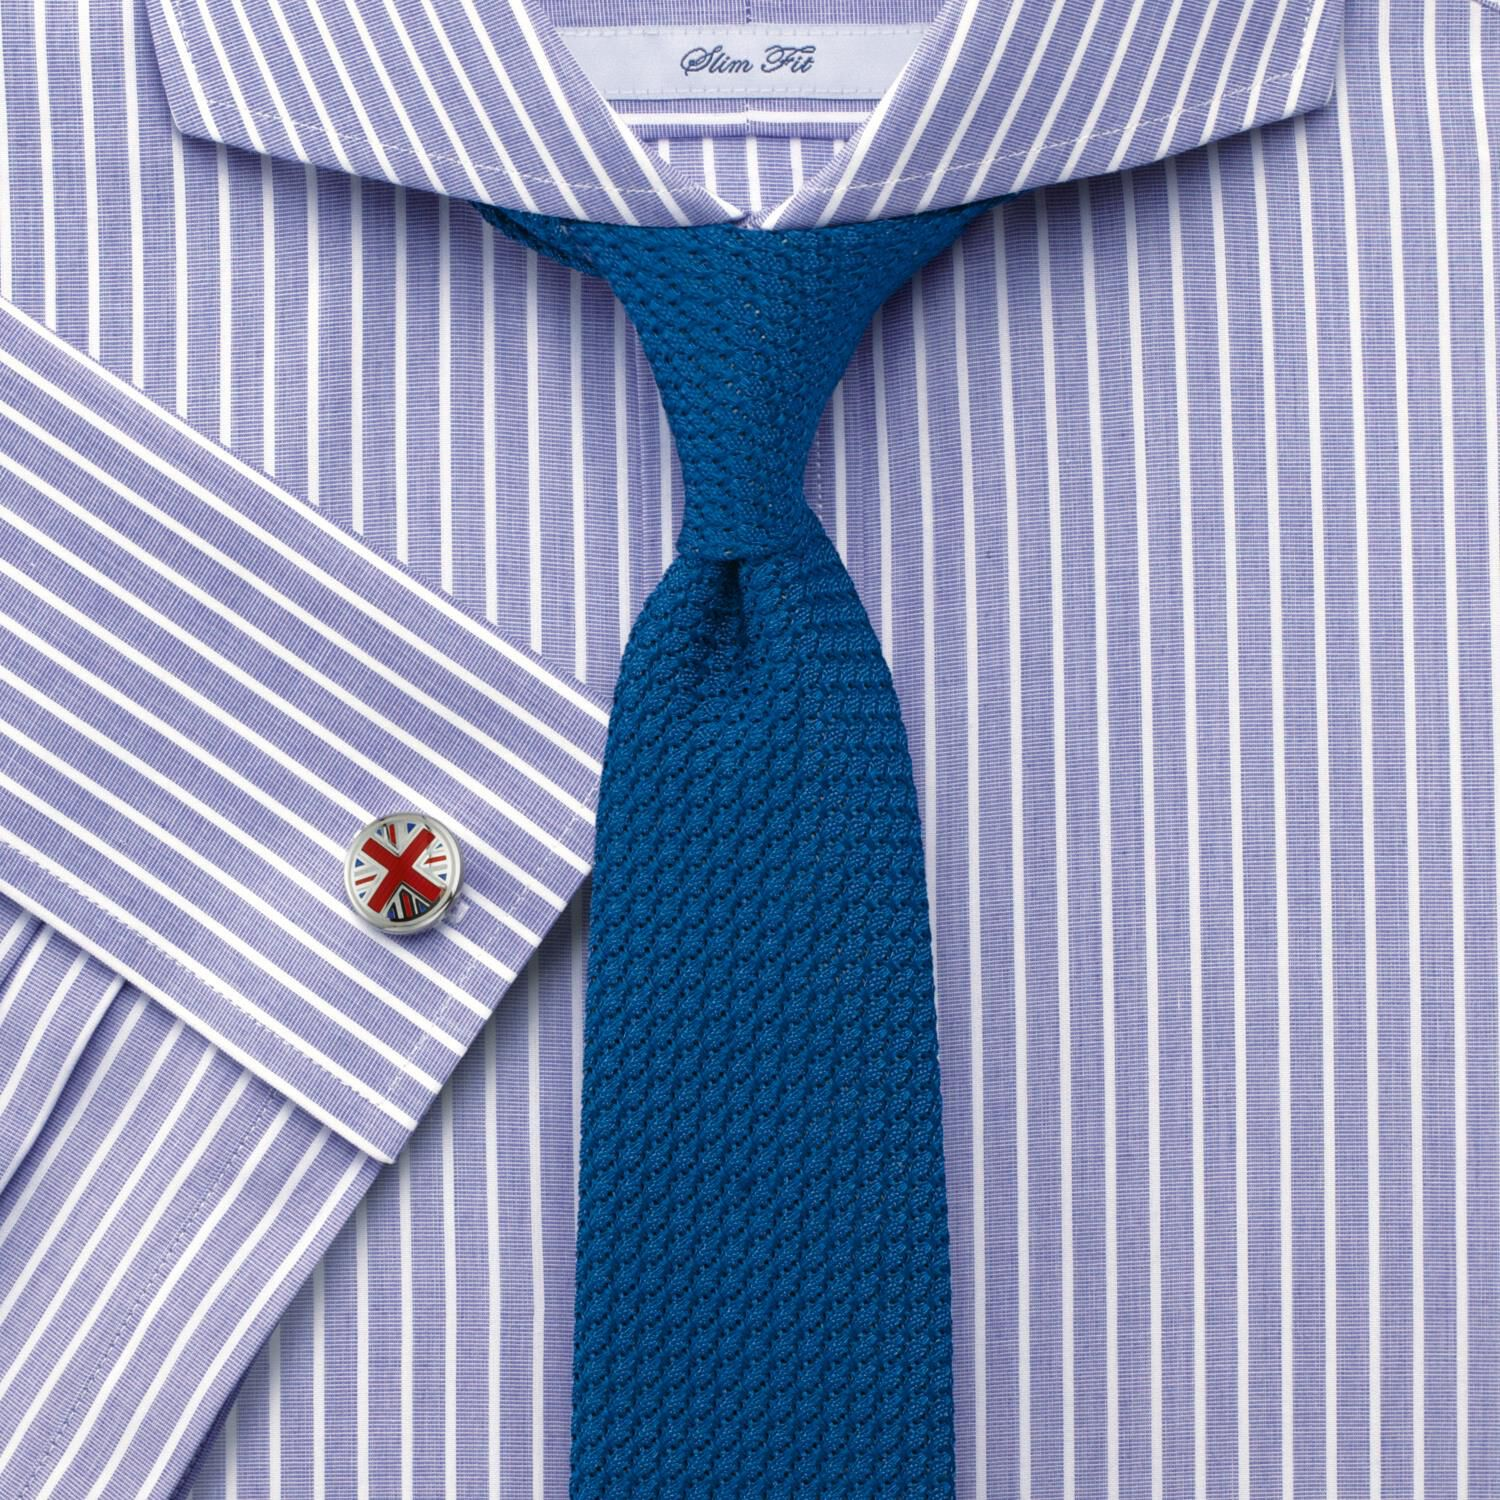 Slim Fit Extreme Cutaway Collar End-On-End Stripe Lilac Cotton Formal Shirt Double Cuff Size 17/34 b